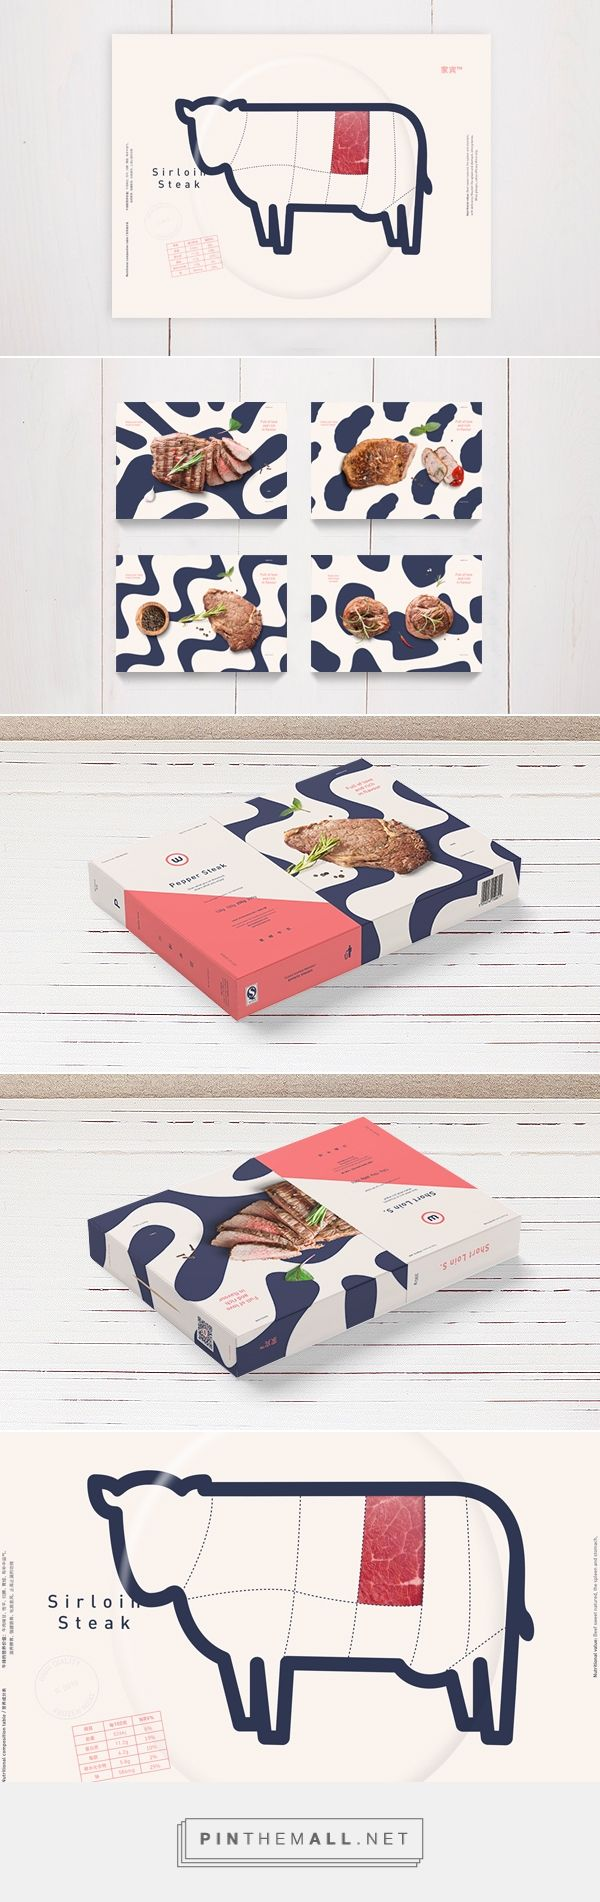 W - Steak @packaging/design